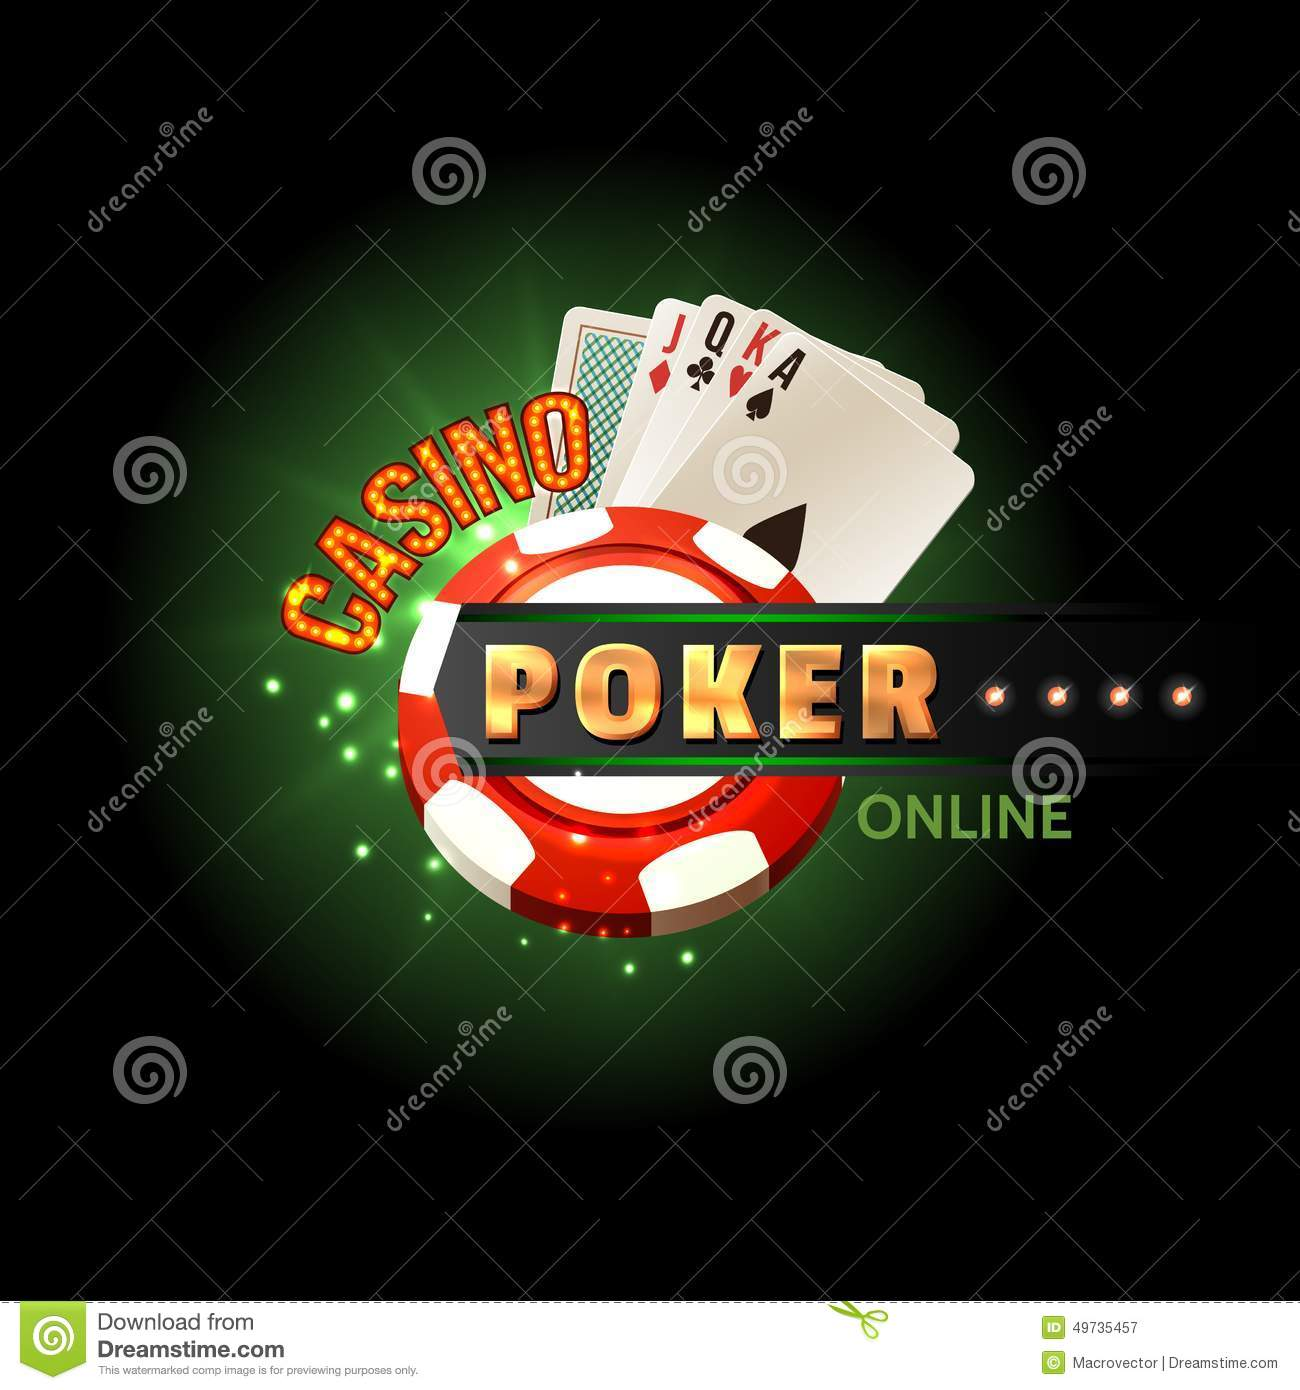 Poker betting - 42079